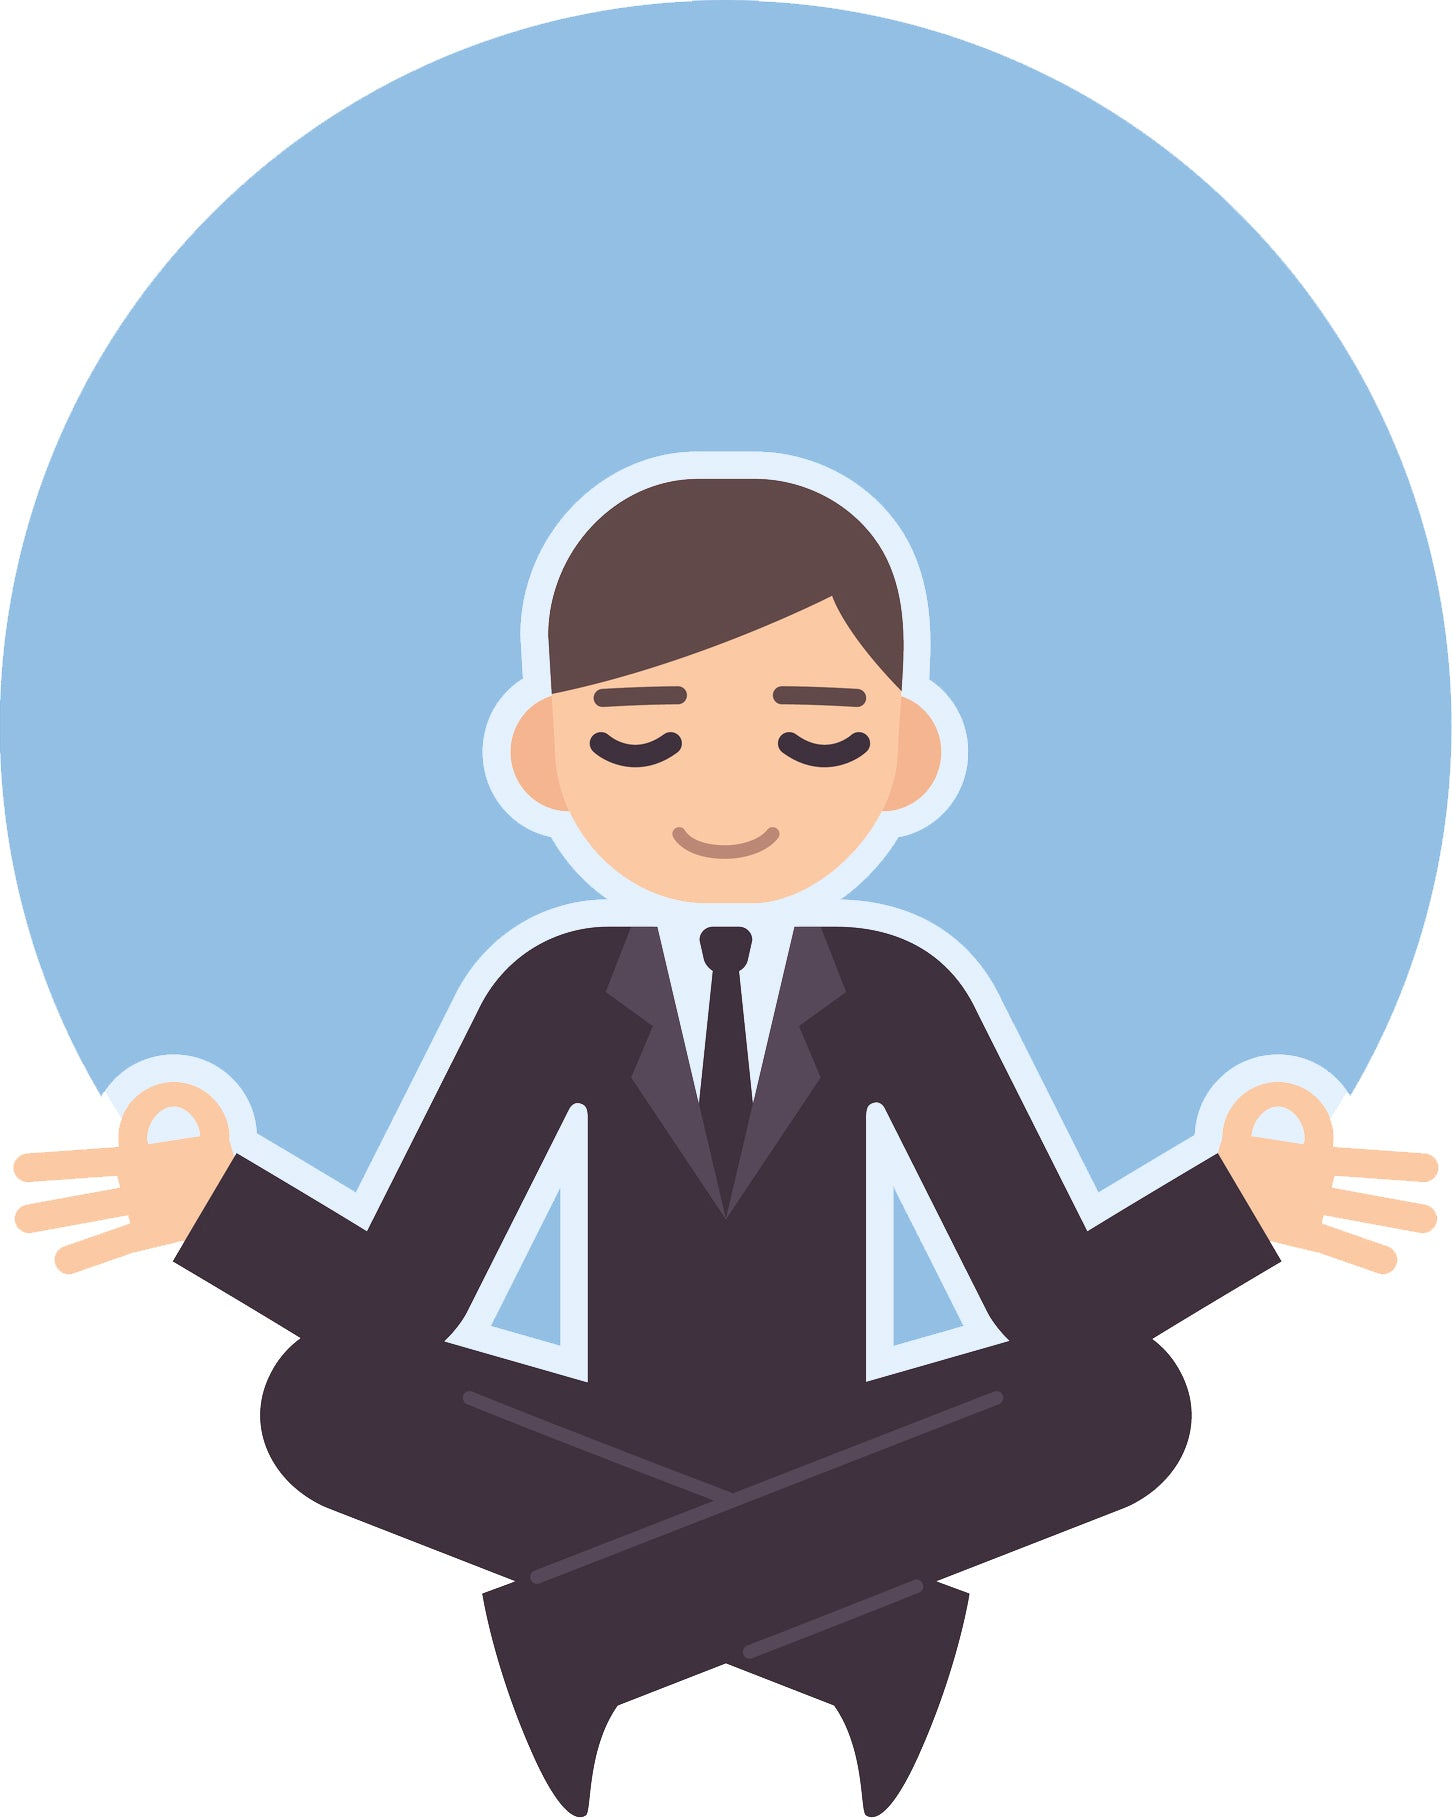 Cool Zen Business Man Yoga Yogi Cartoon Icon Vinyl Decal Sticker